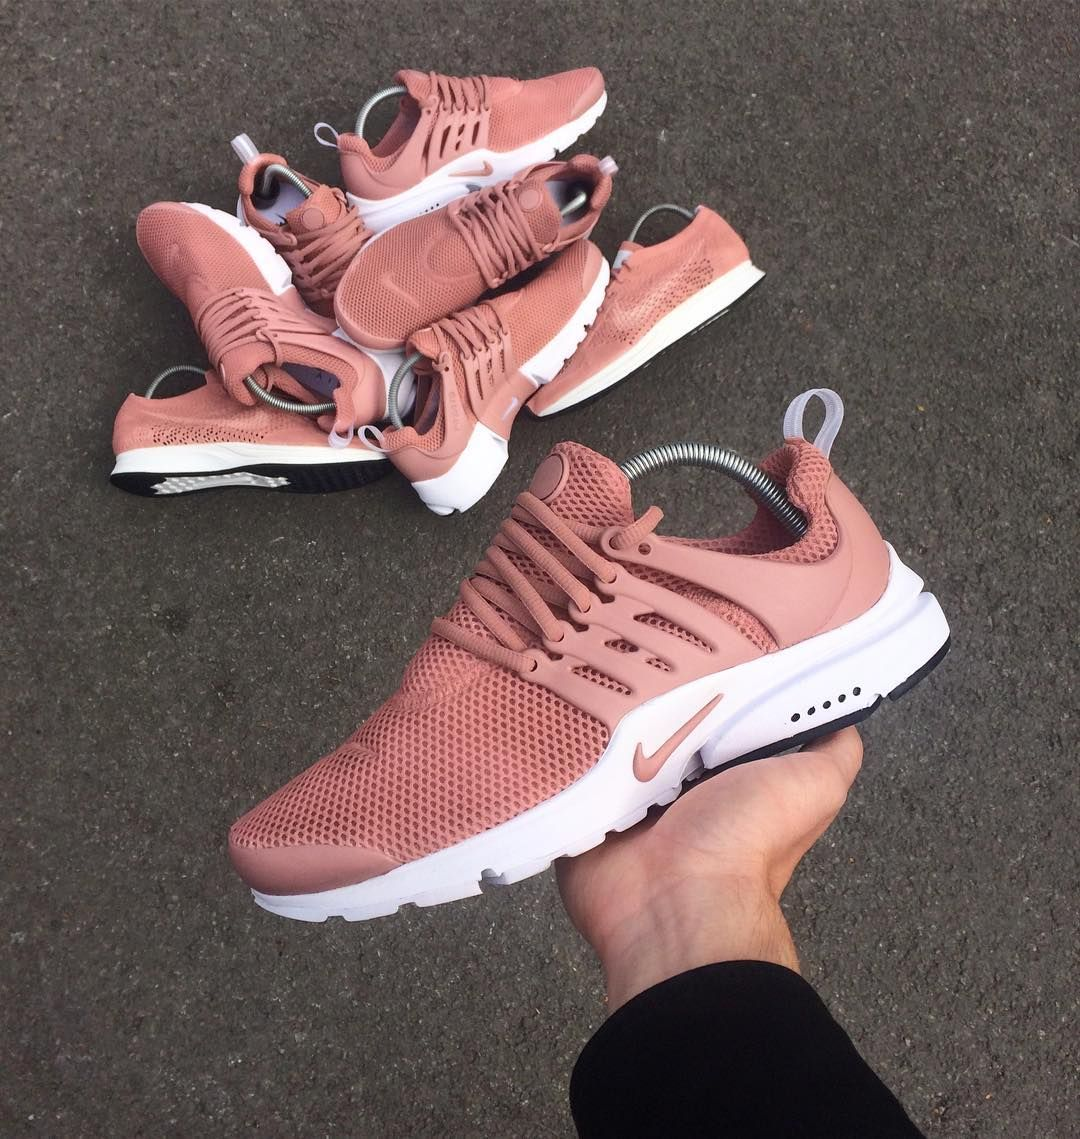 promo code 2ecca 5e30b Air Presto STONE PINK (custom) Shoes Sneakers, Nike Shoes, Shoes Heels,